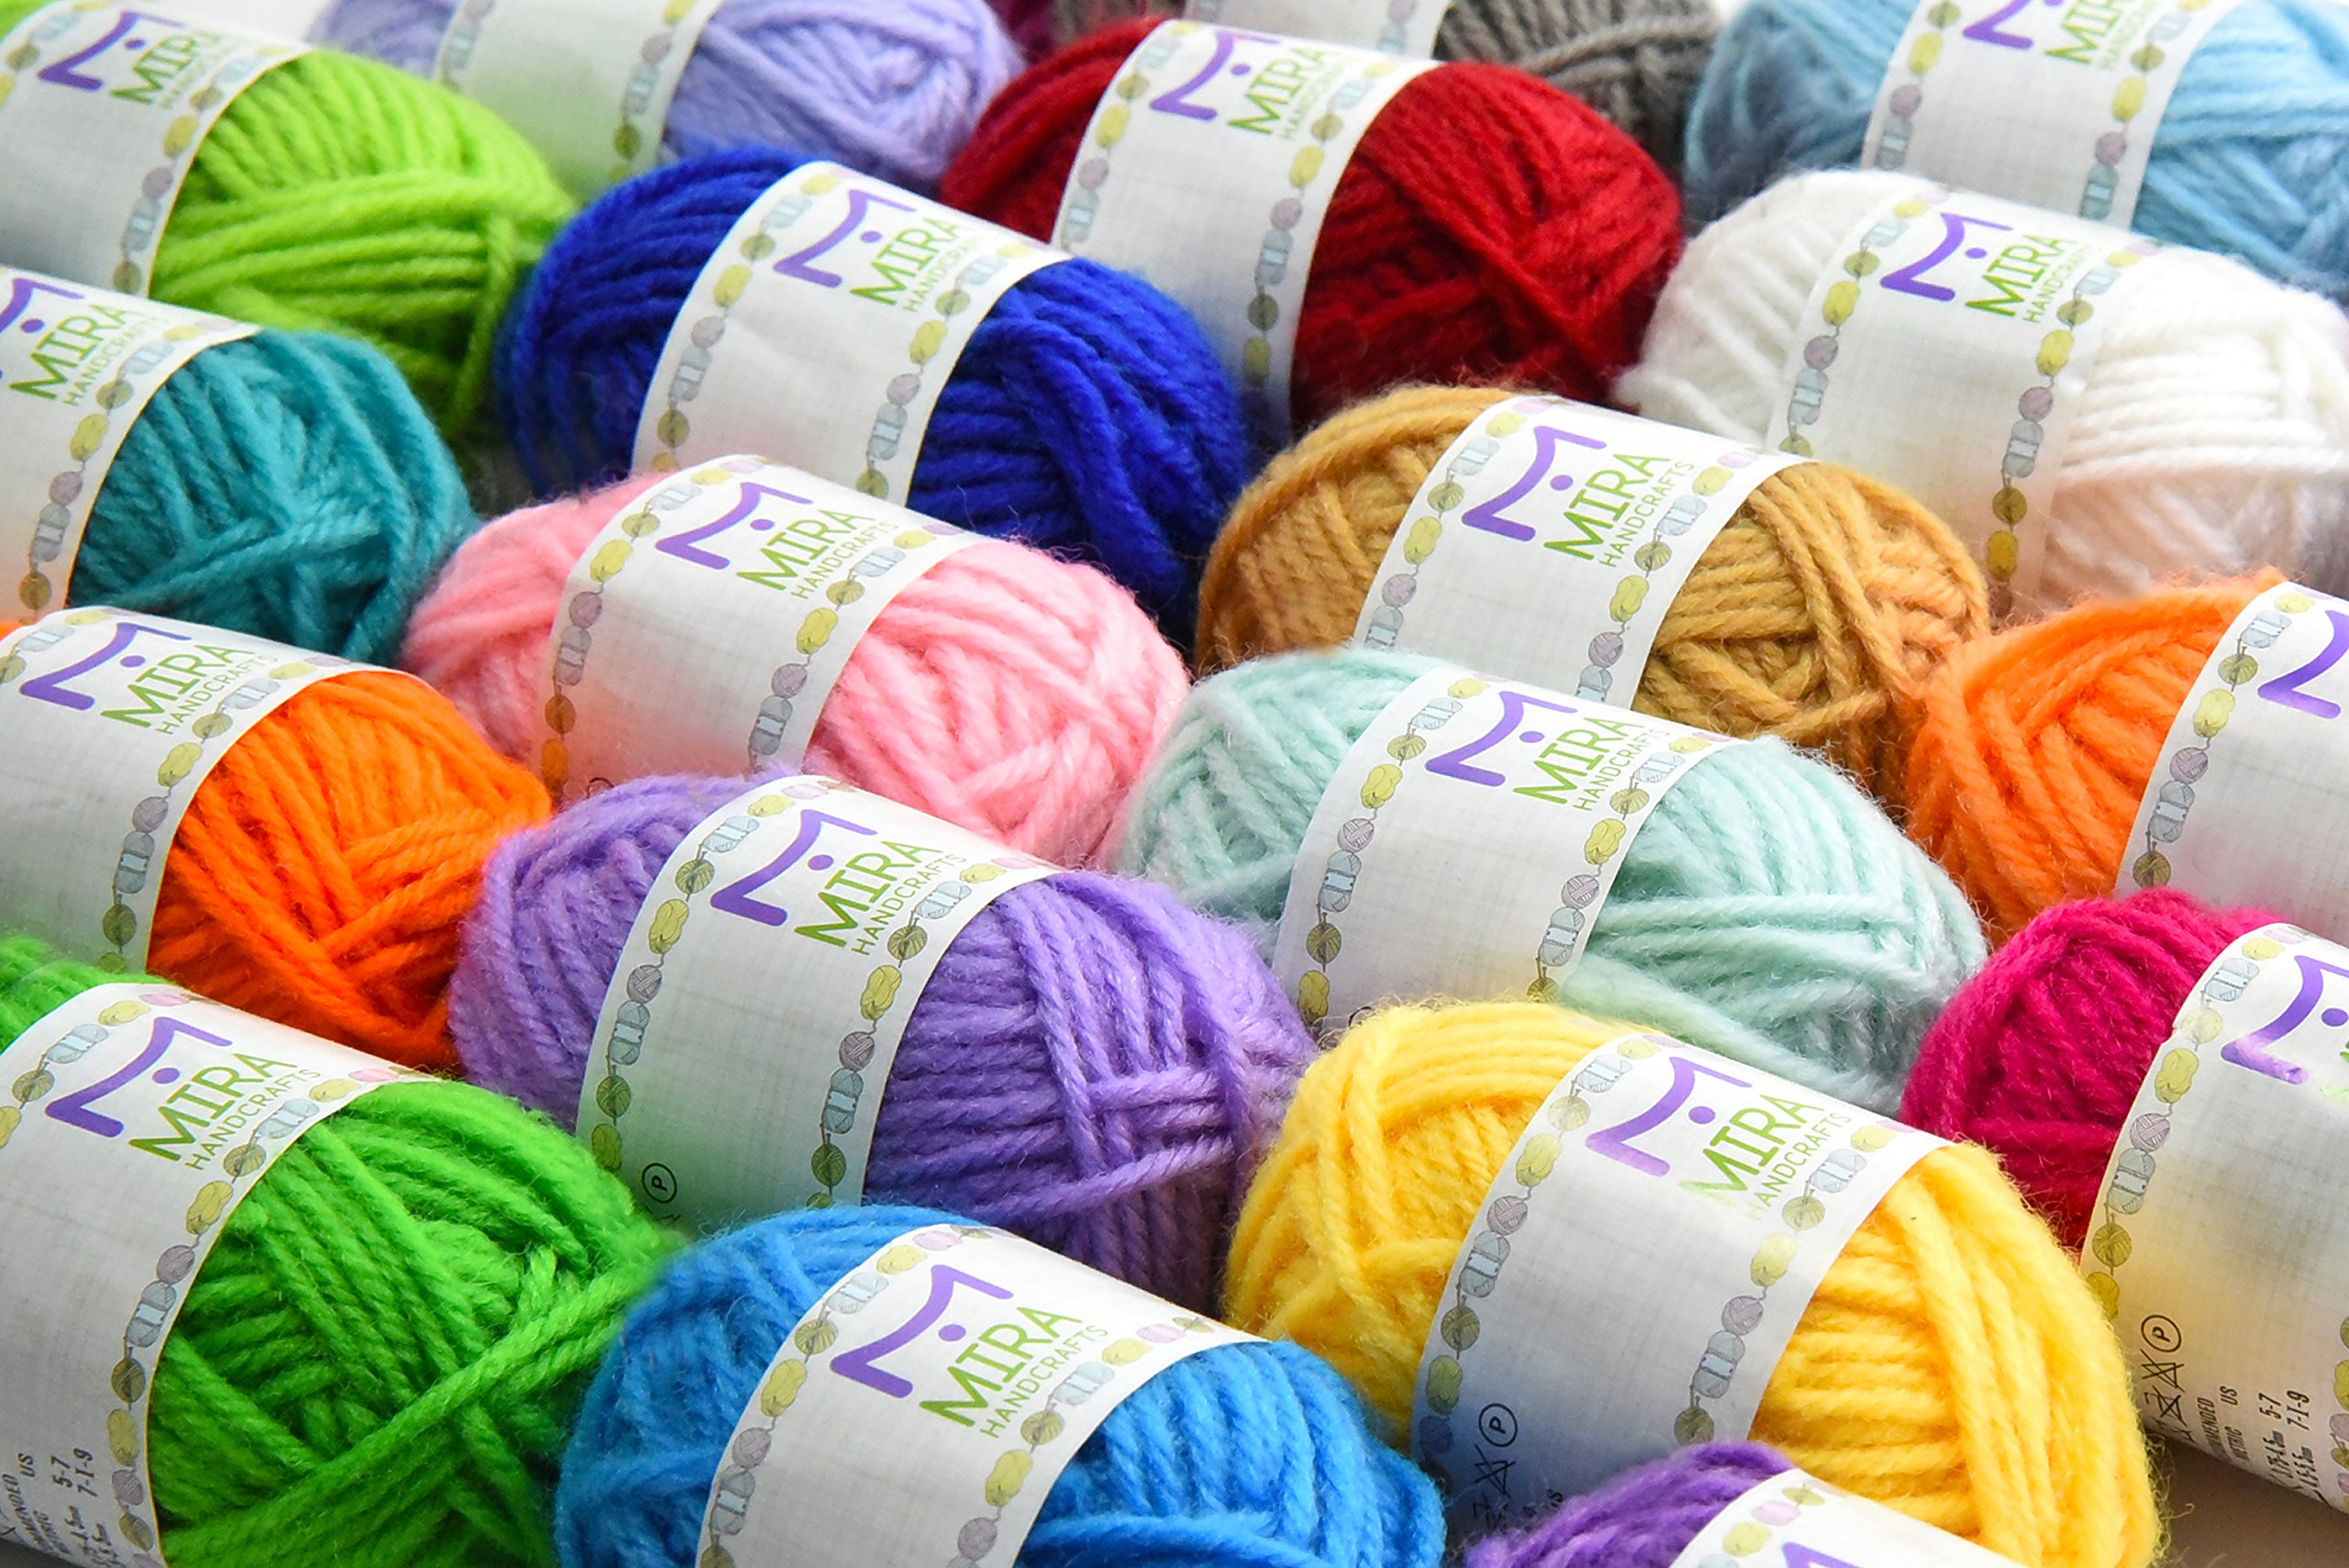 Mira Handcrafts 24 Acrylic Yarn Bonbons | Total of 525 Yards Craft Yarn for Knitting and Crochet | Includes 2 Crochet Hooks, 2 Weaving Needles, 7 E-Books | DK Yarn | Perfect Beginner Kit by Mira HandCrafts (Image #5)